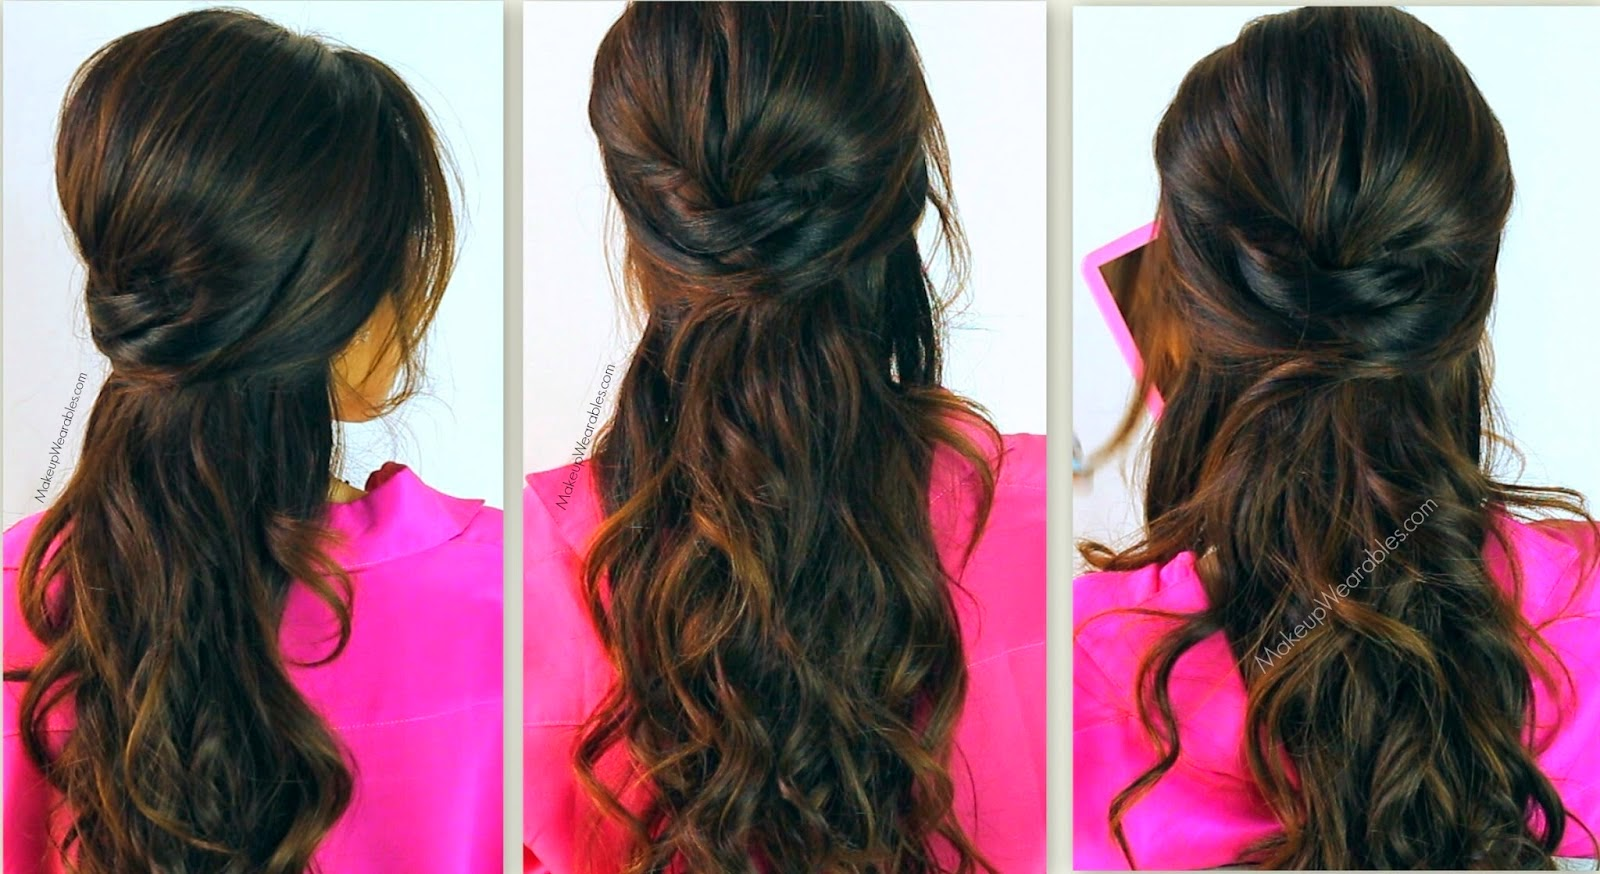 Half Updos For Long Hair Tutorial Pcitures And Video 2014 New